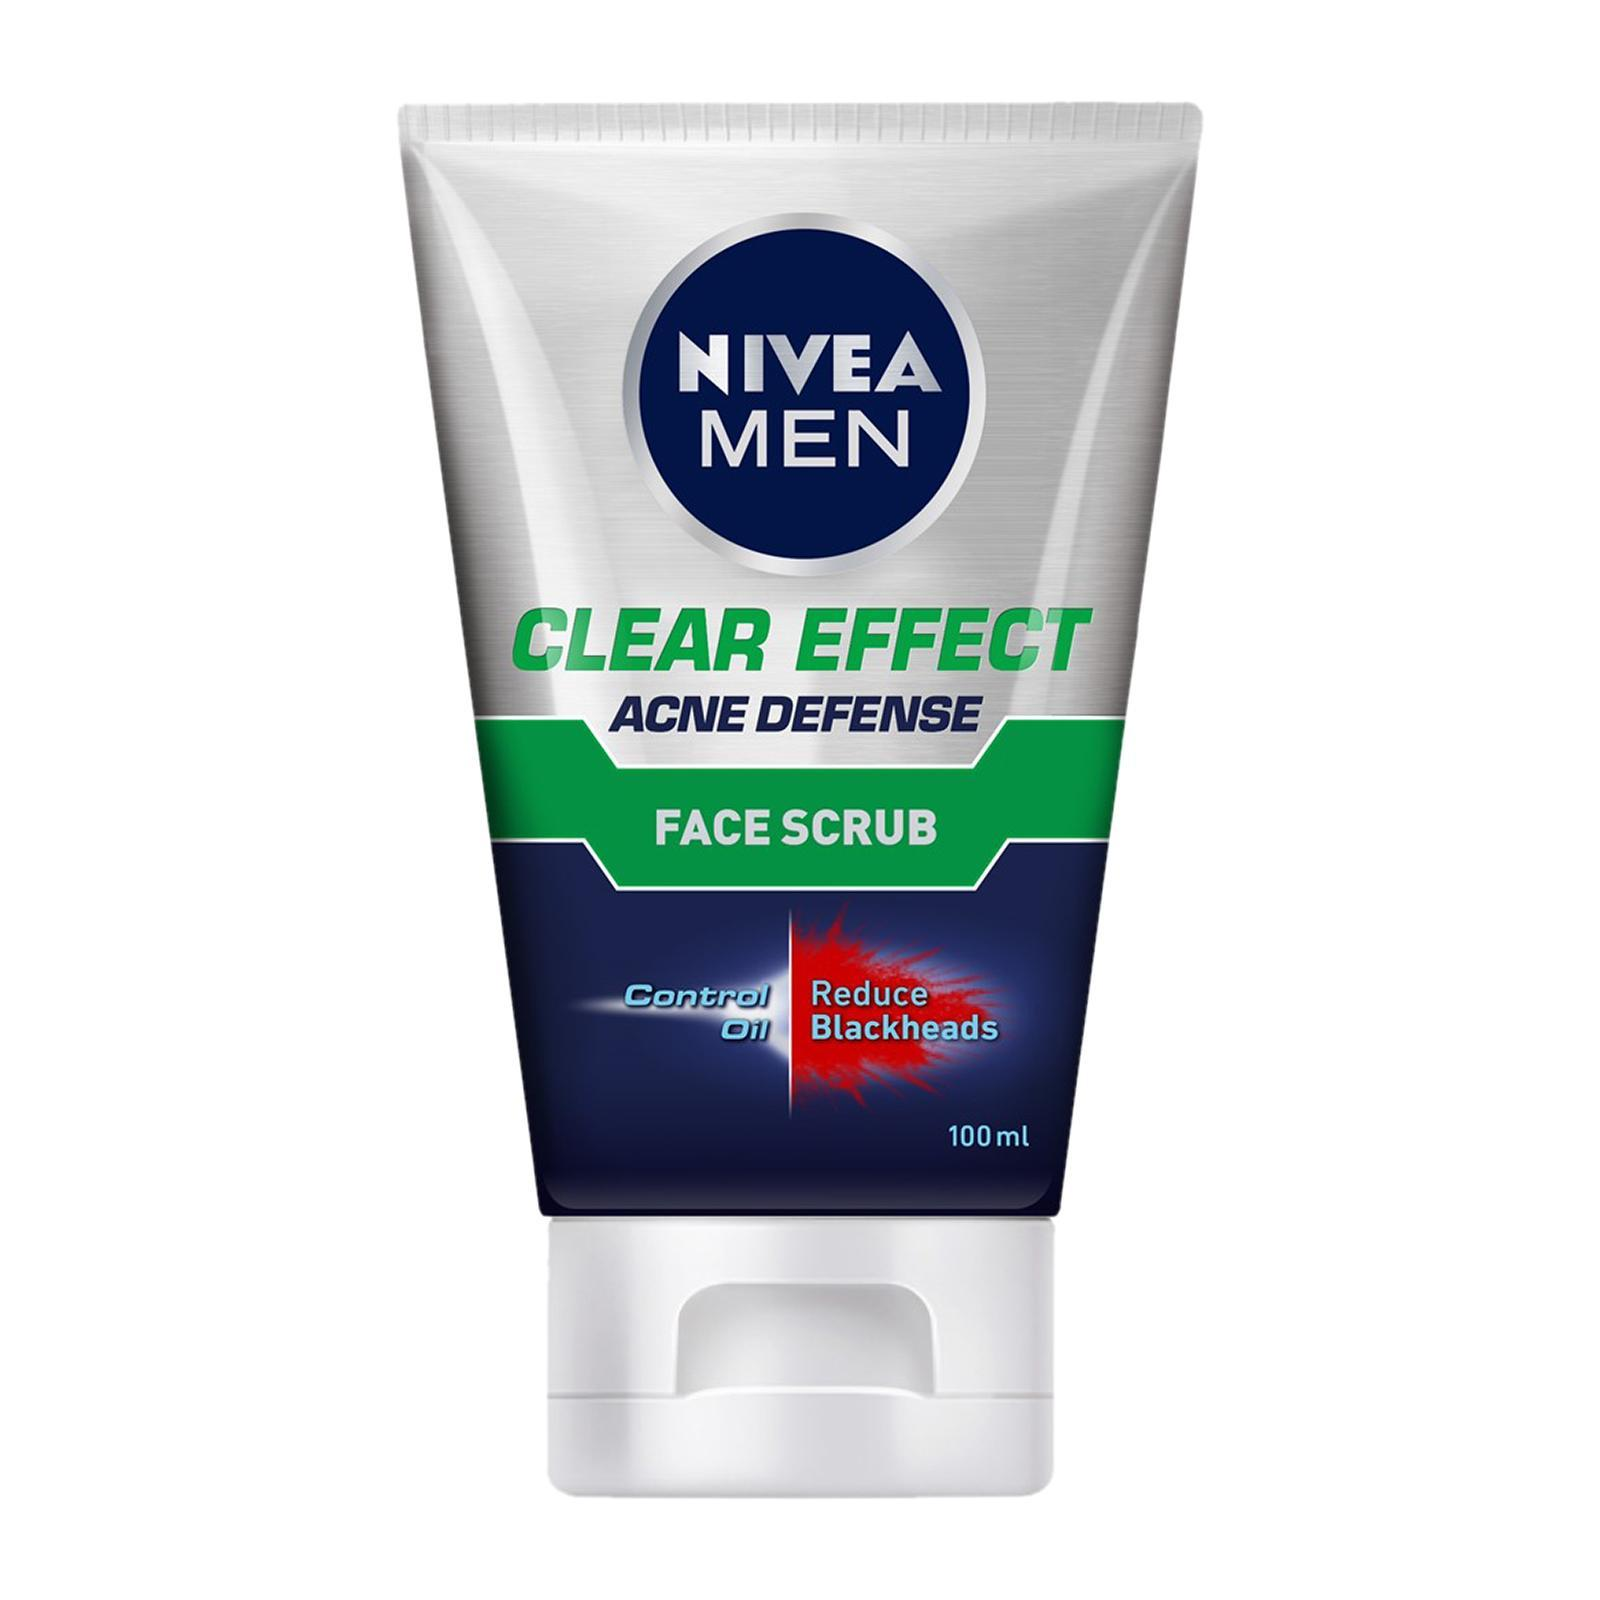 Nivea Men Clear Effect Acne Defense Face Scrub